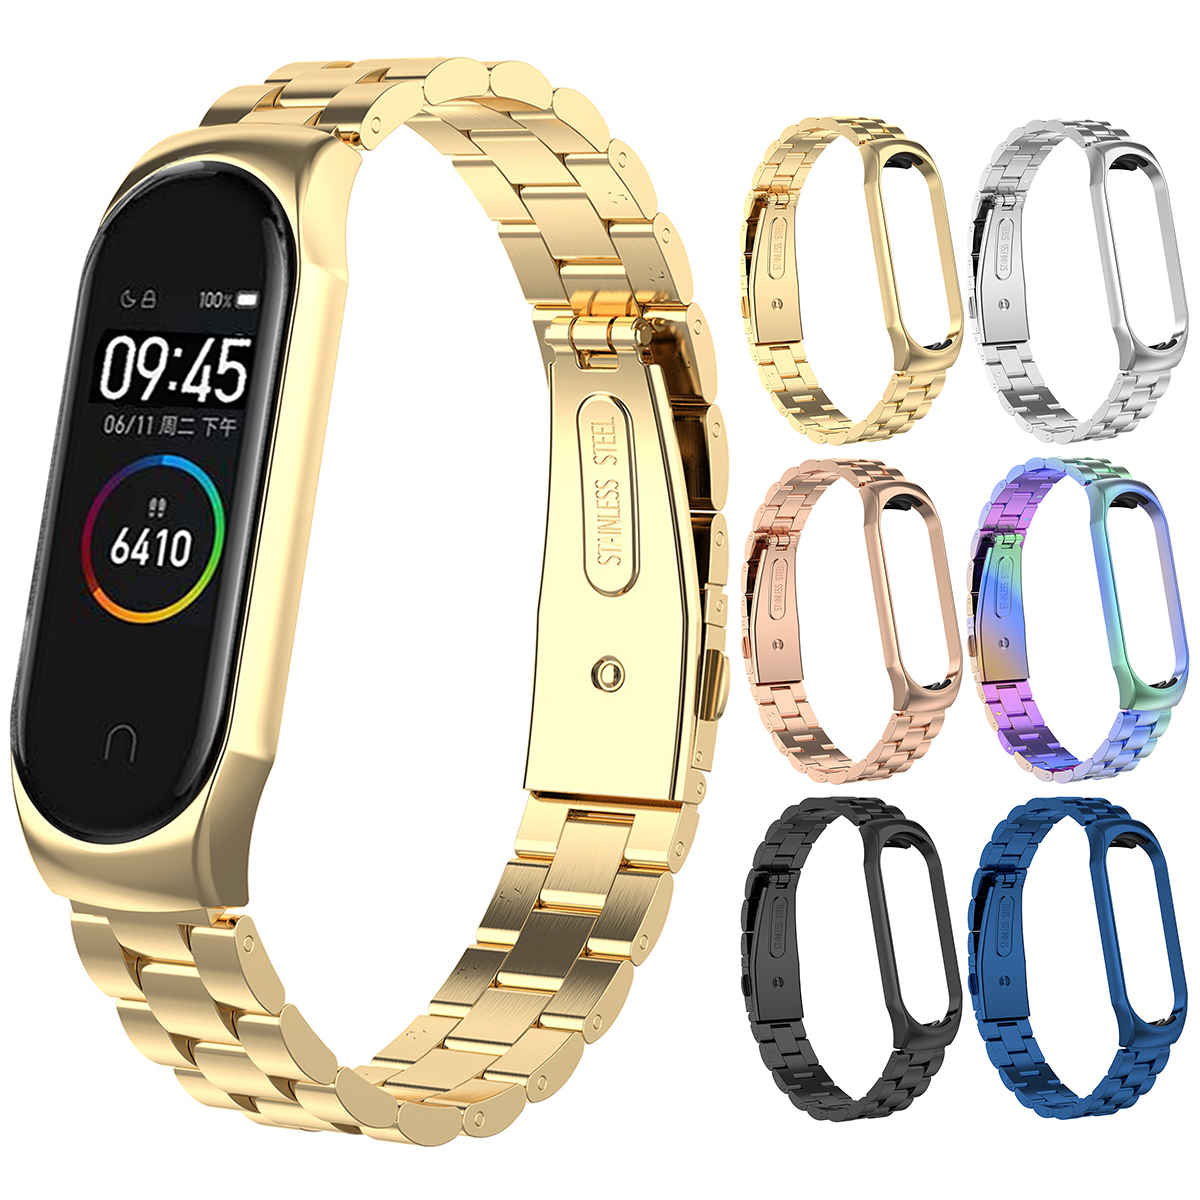 Luxury Metal Bands Business Stylish Straps Stainless Steel Bracelet Watch Band Wrist Strap With Frame For Xiaomi MI Band 4/3